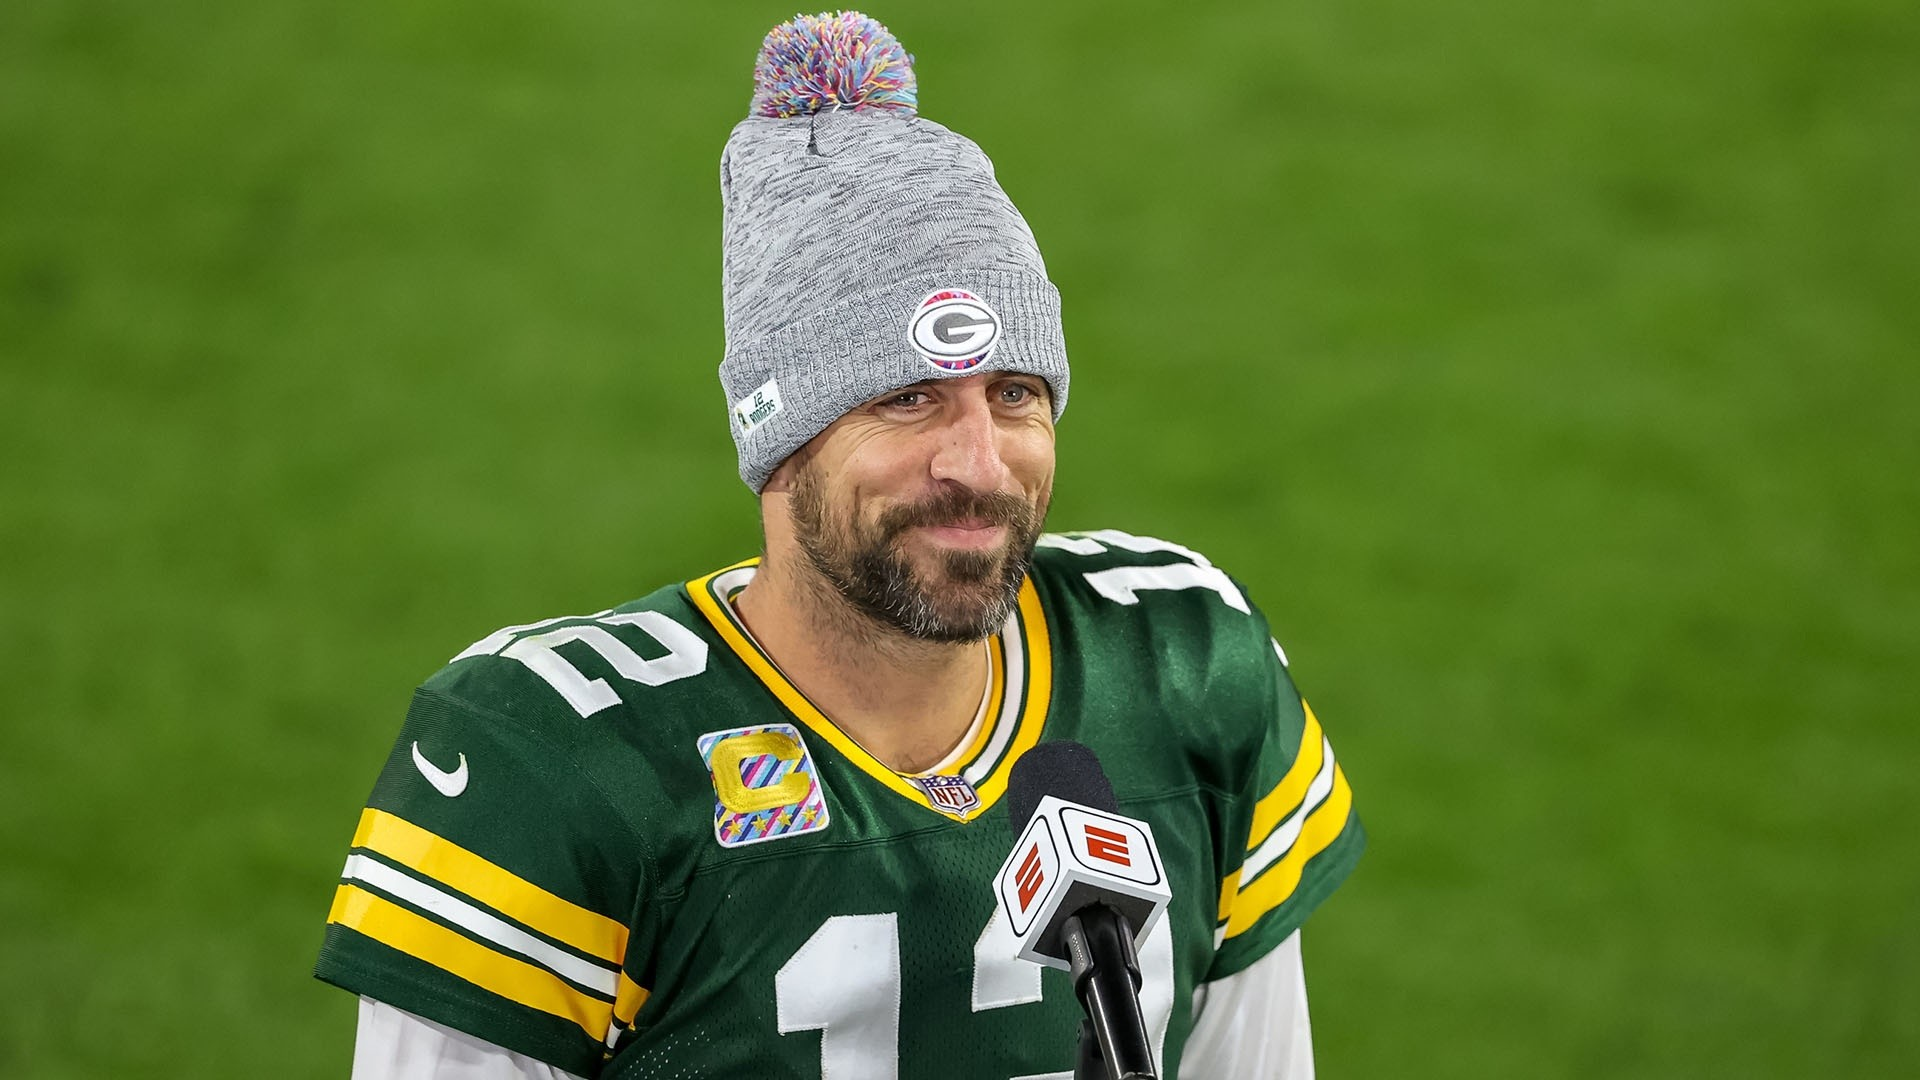 Aaron Rodgers Media Quarterback Comments Pat Mcafee Show Snotapwi